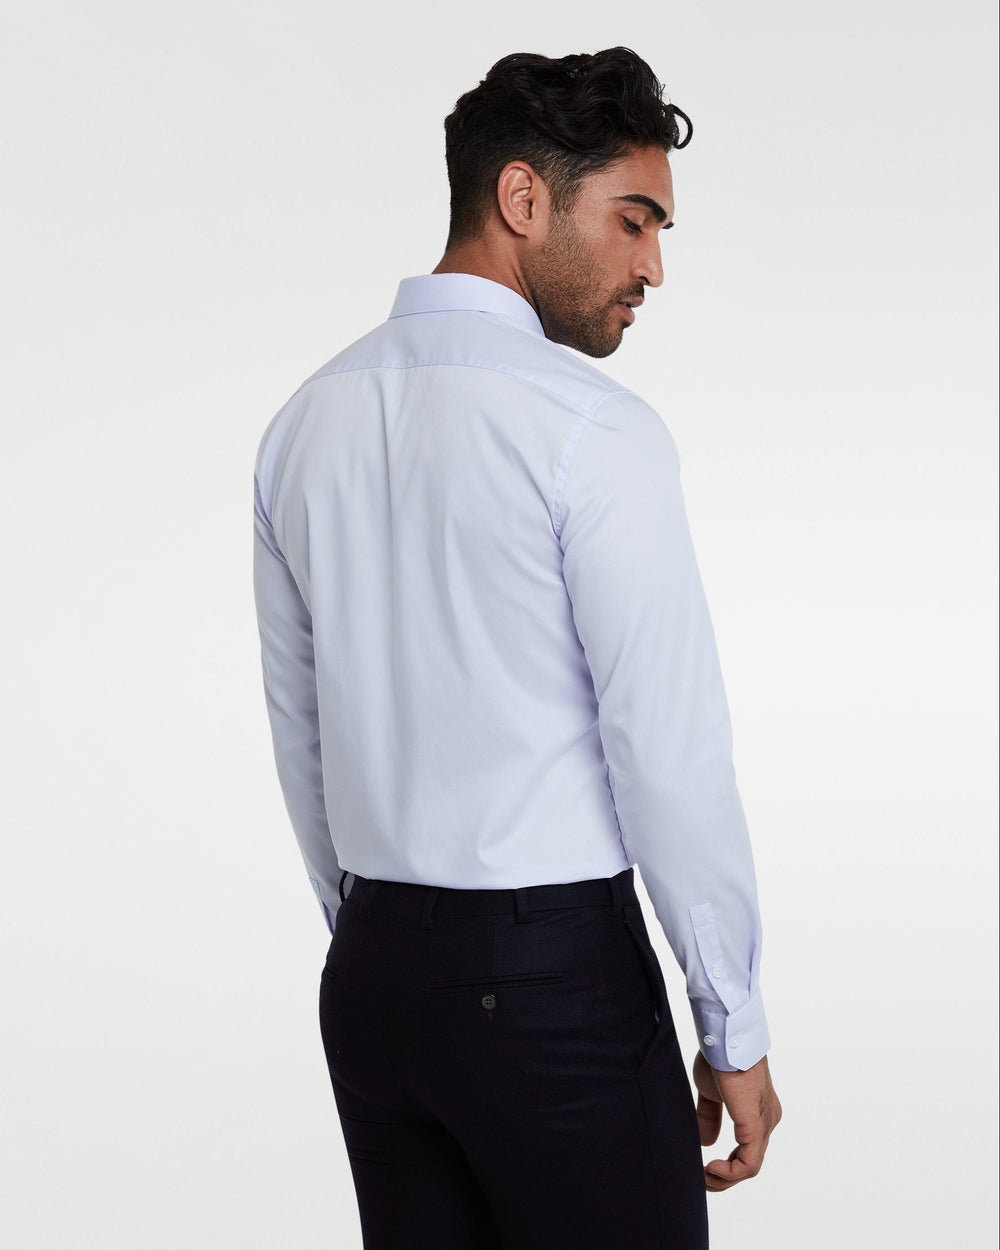 Business shirt blue wrinkle-free